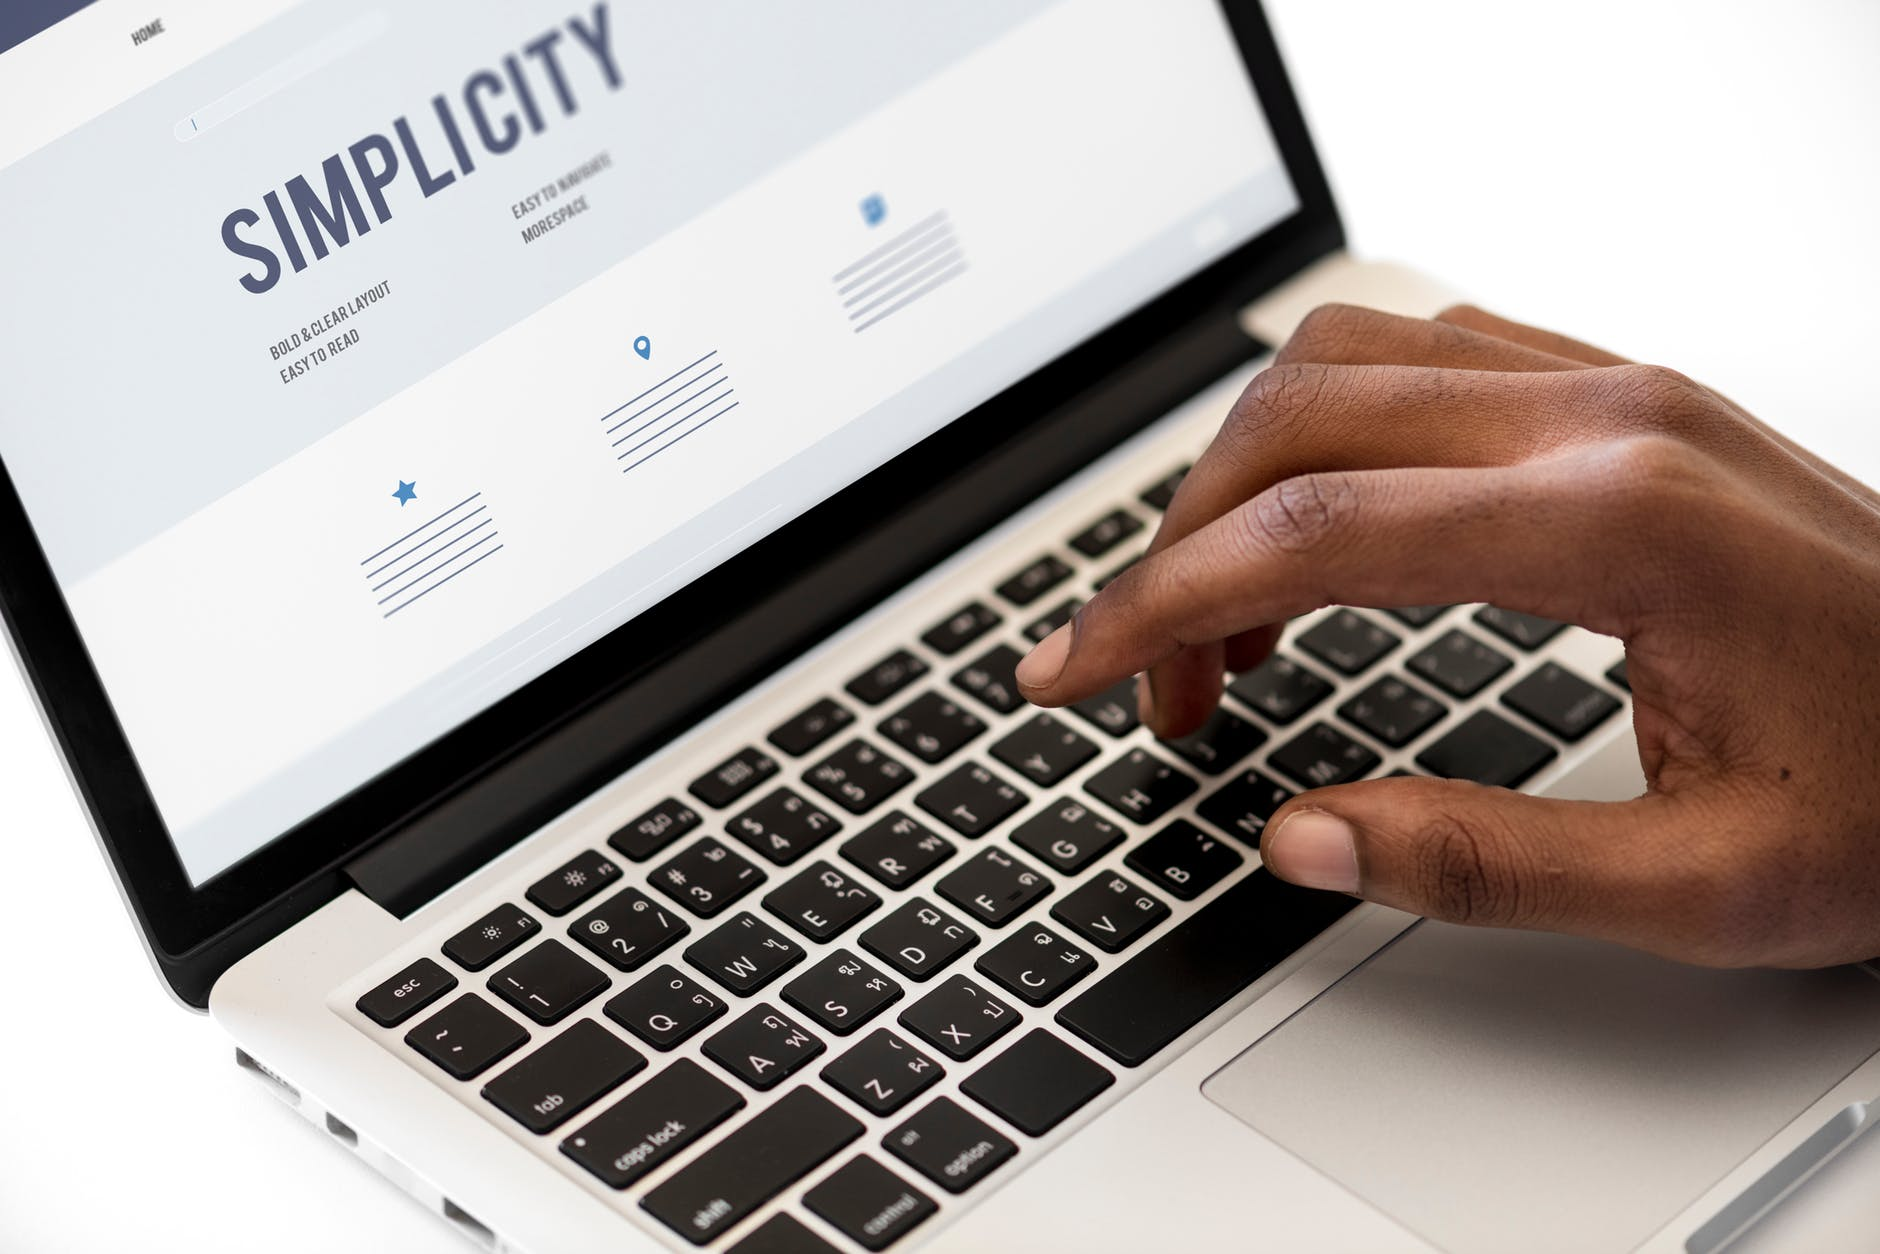 keep your website simple but informative to improve customer dwell time on your website